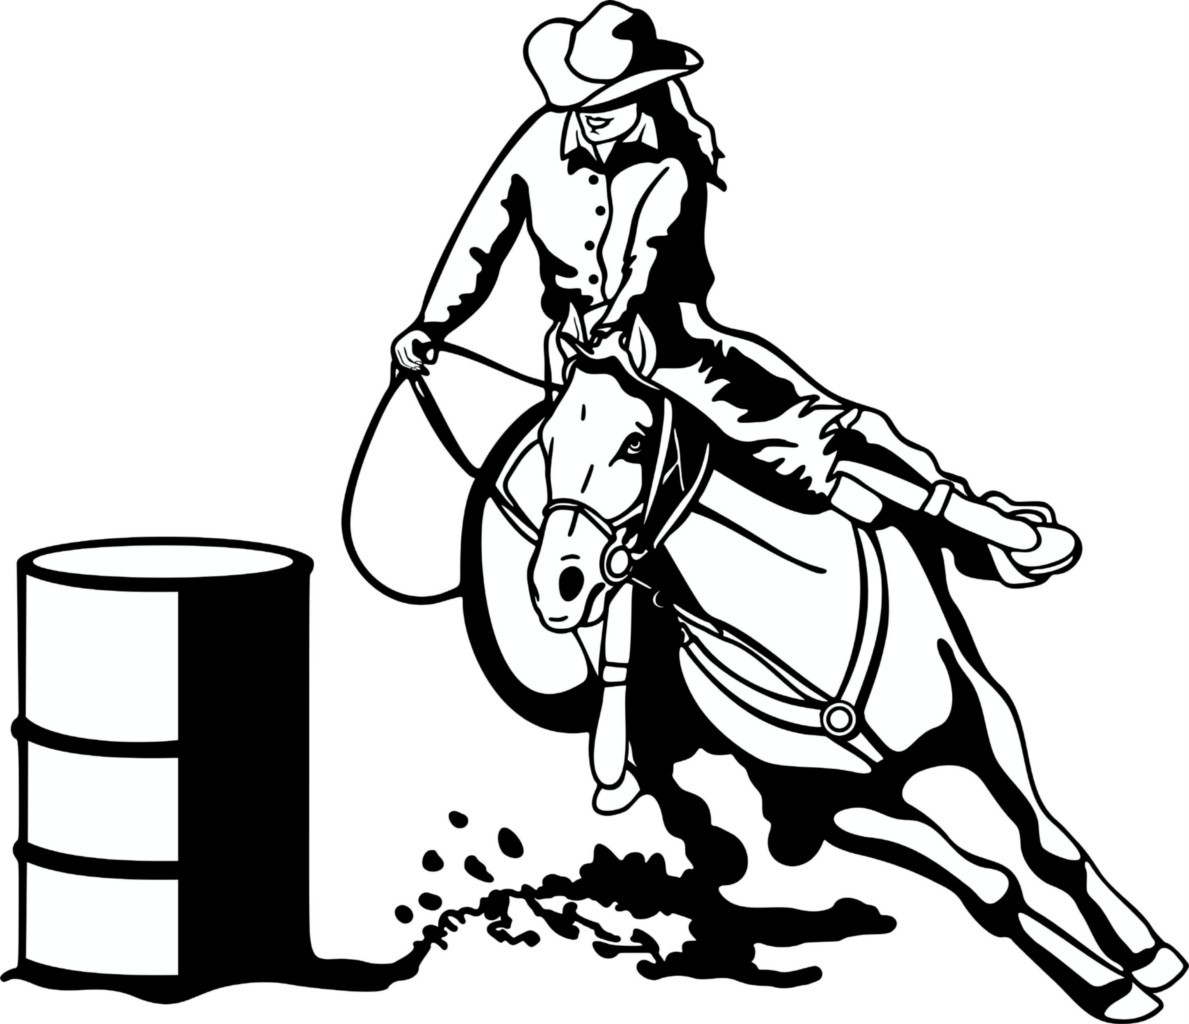 Free barrel racing clipart graphic library download Free Barrel Horse Cliparts, Download Free Clip Art, Free Clip Art on ... graphic library download